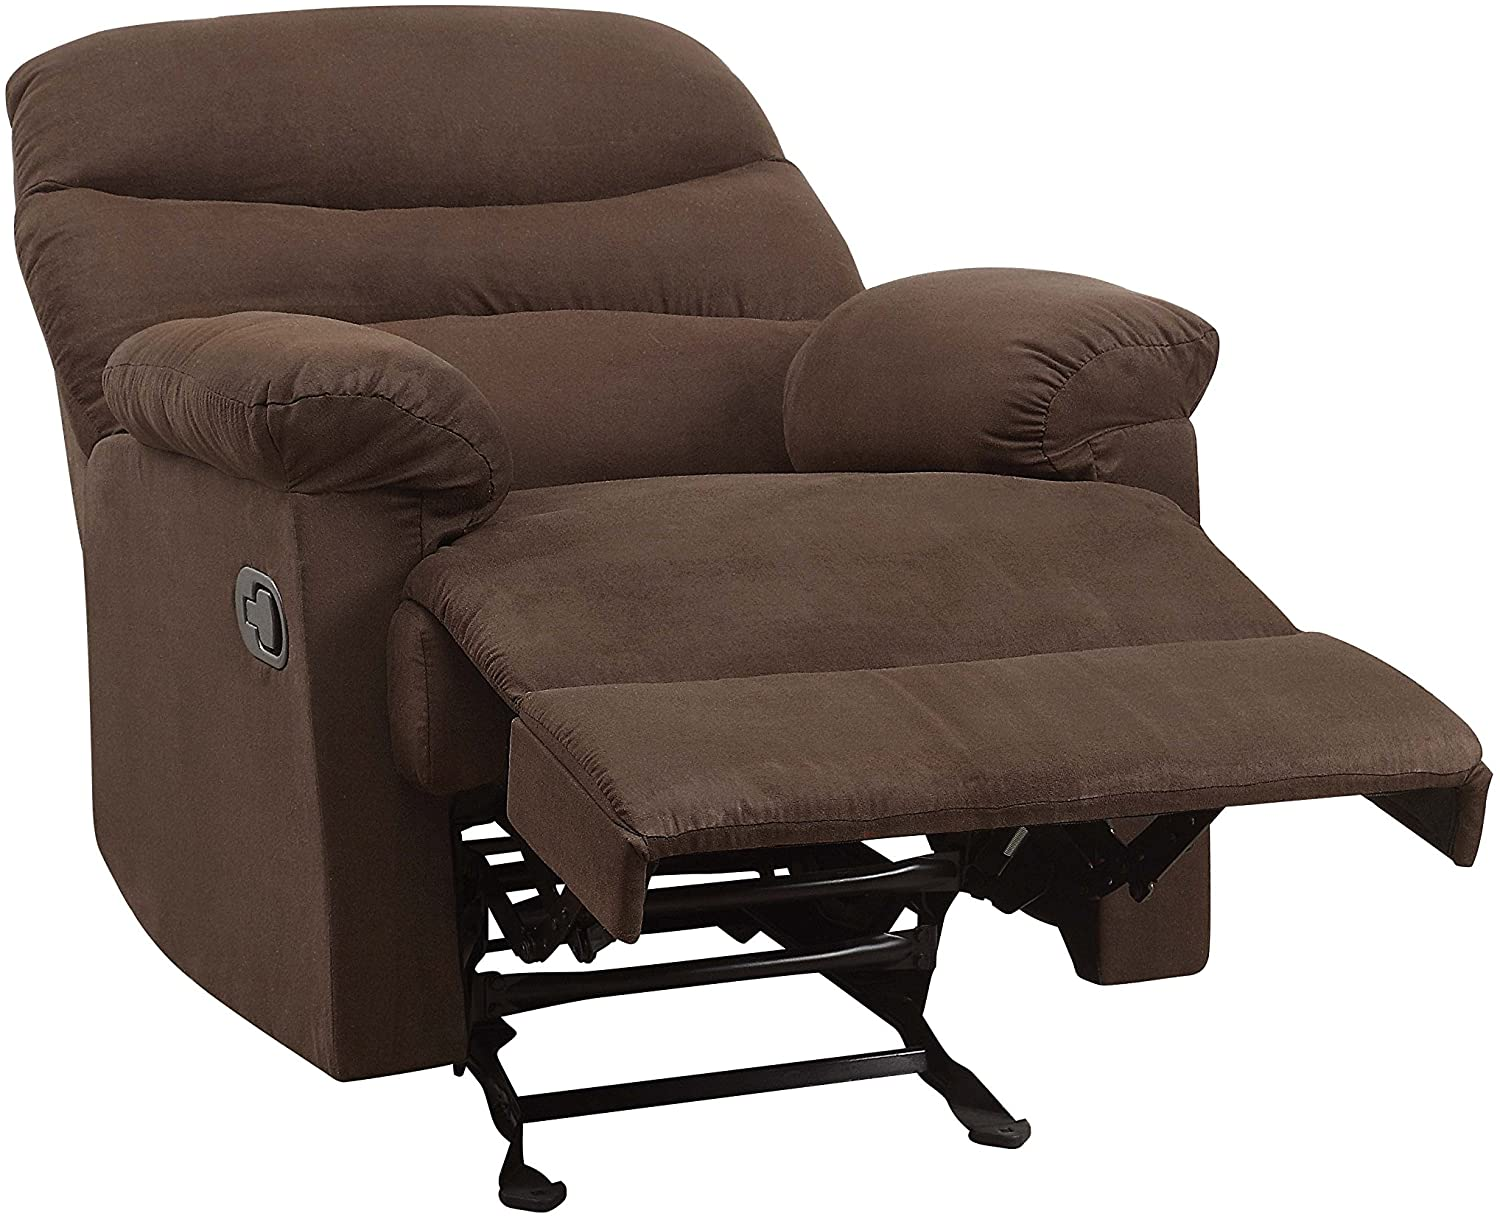 Acme Arcadia Recliner Review – Features